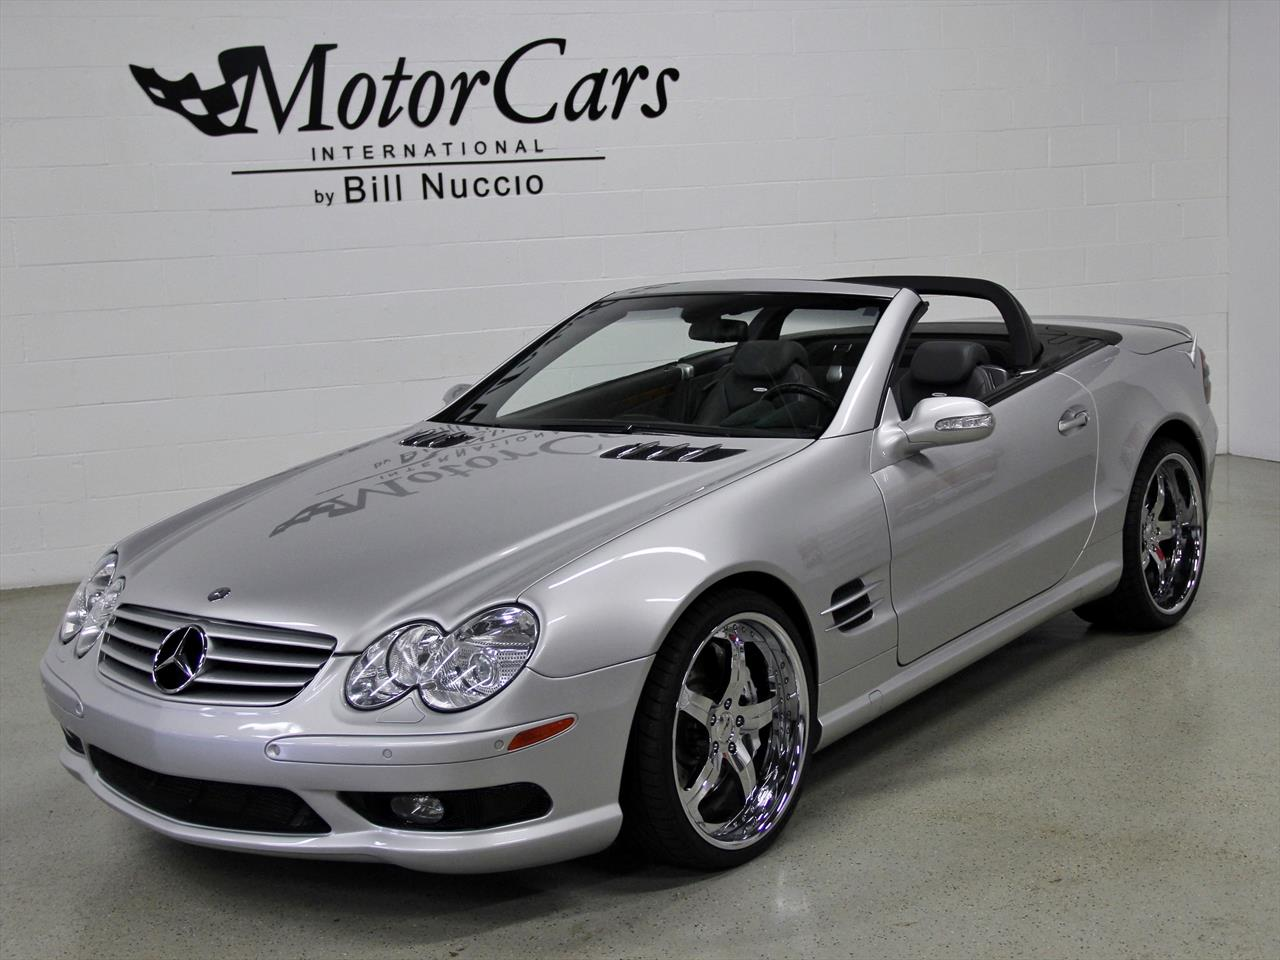 2003 mercedes benz sl55 amg. Black Bedroom Furniture Sets. Home Design Ideas